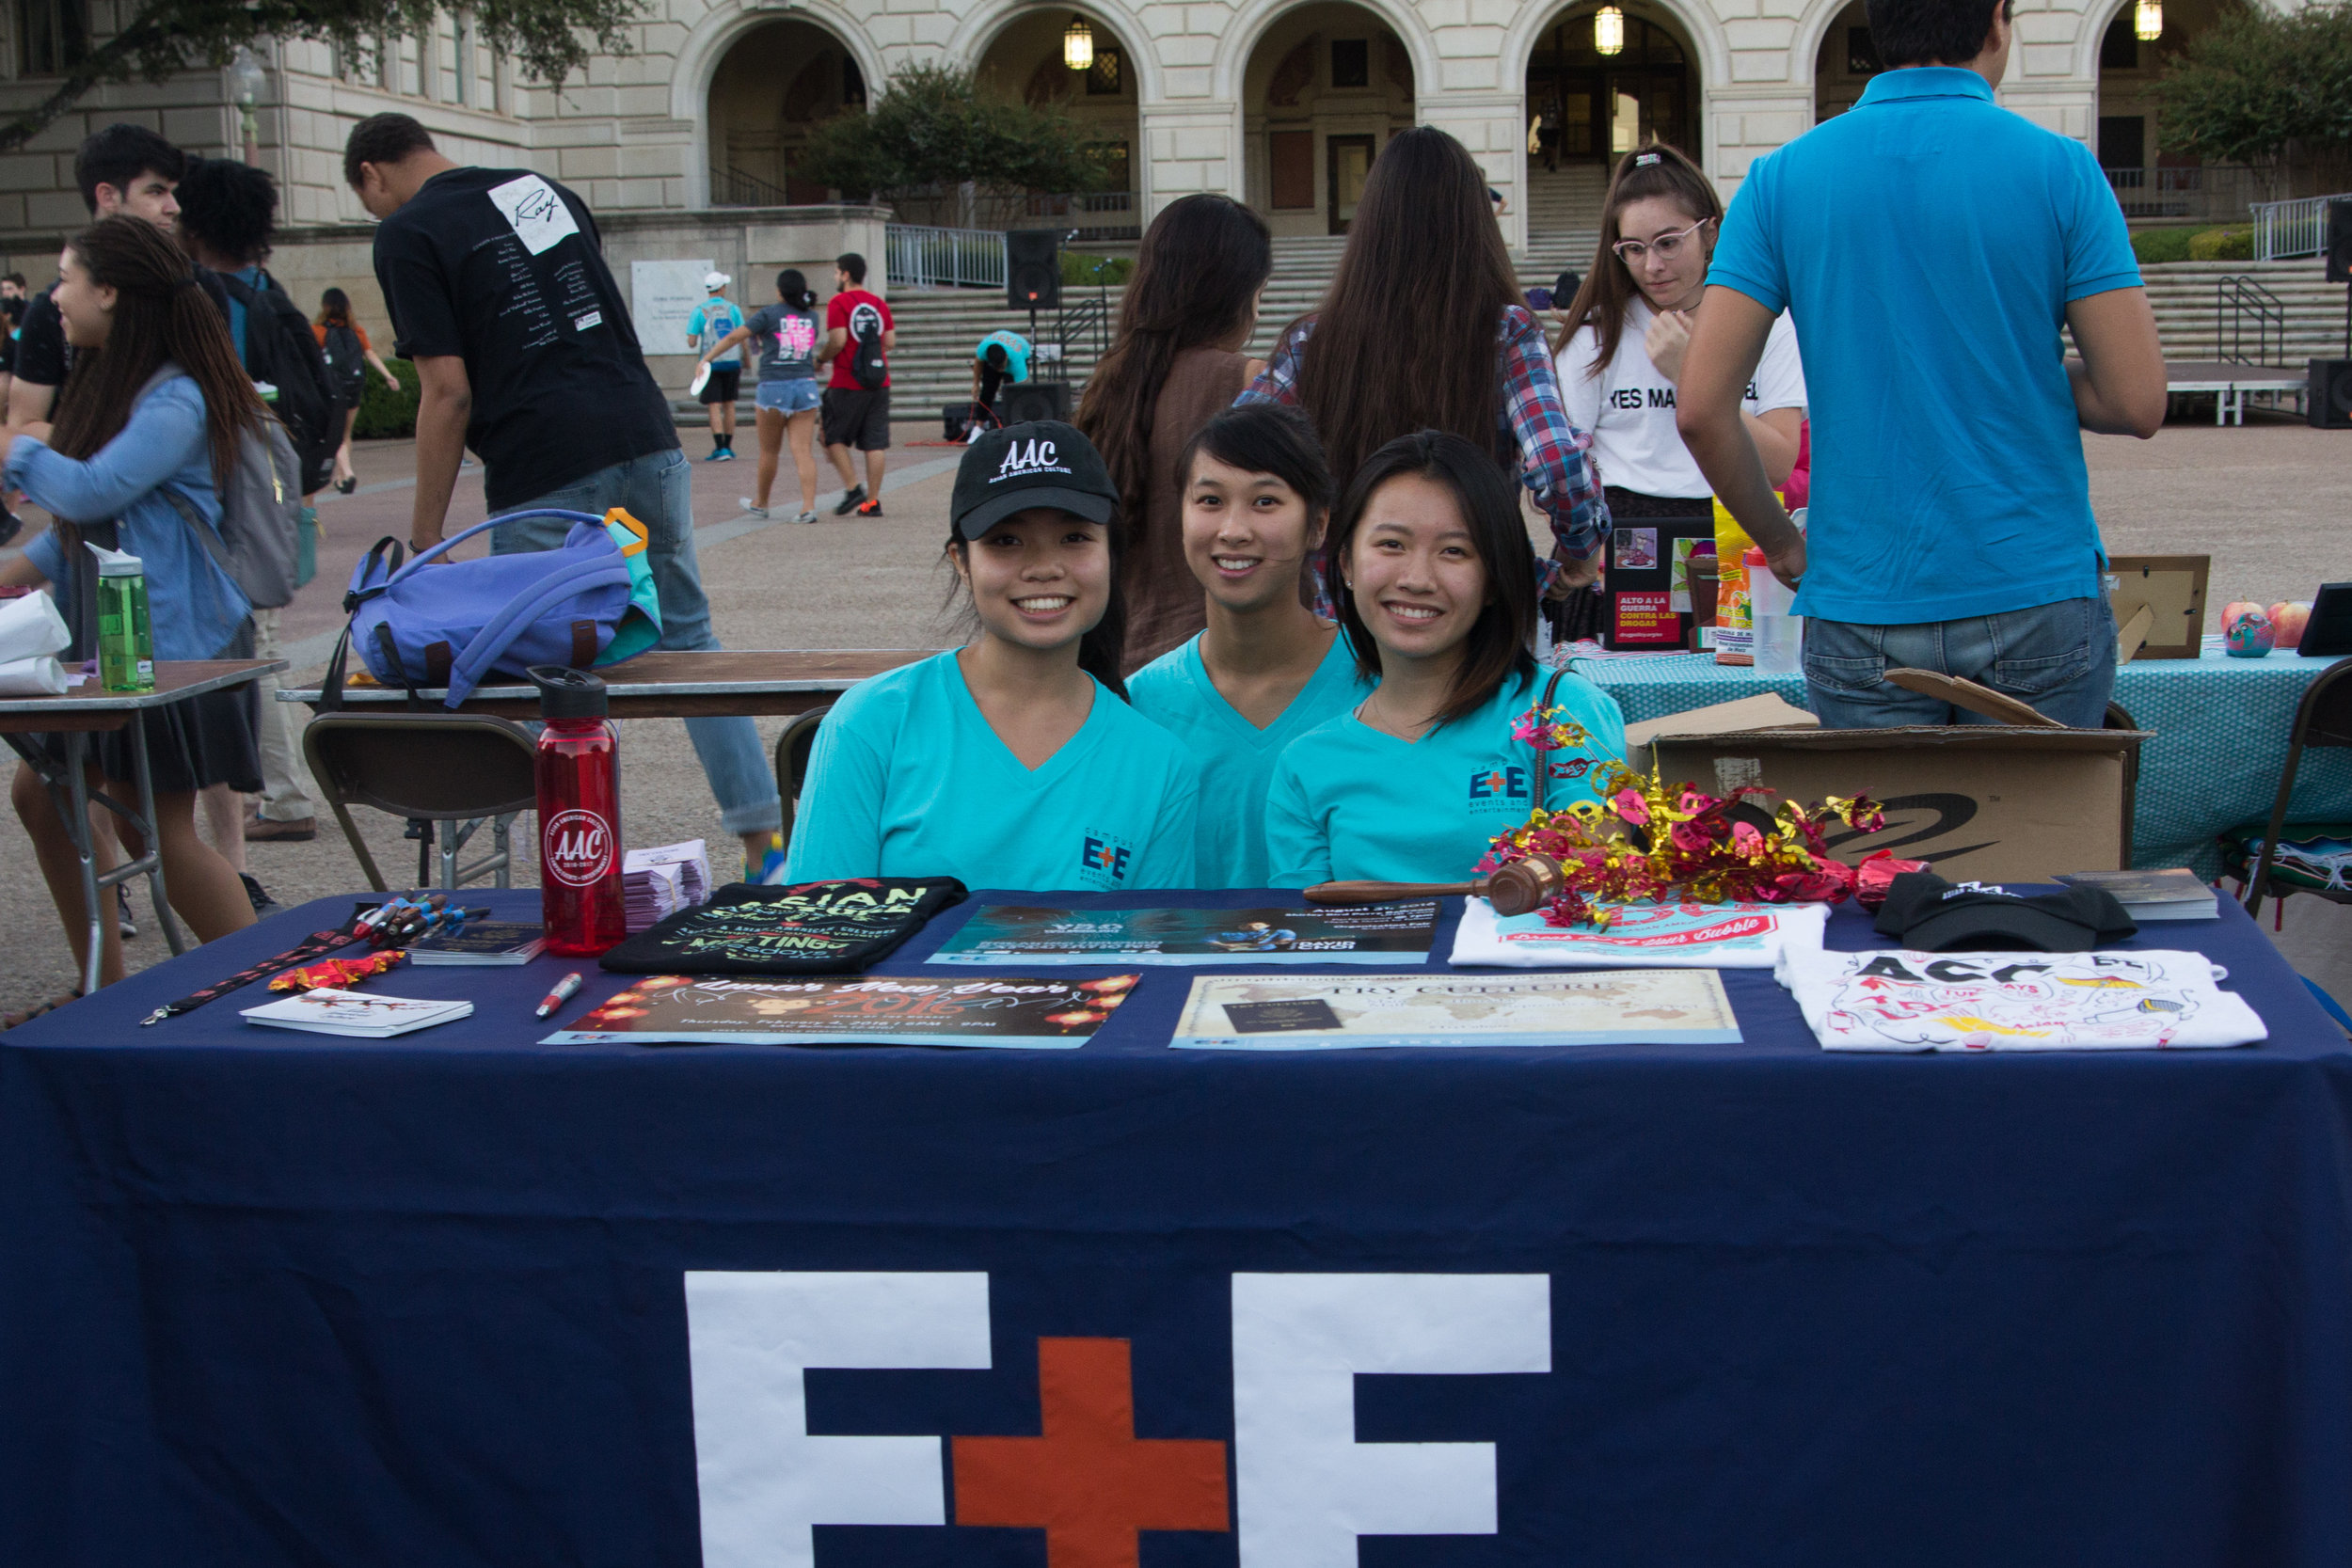 Campus E + E members Tam Do, Jasmine Yang and Jenna Ma welcomed students to the event.